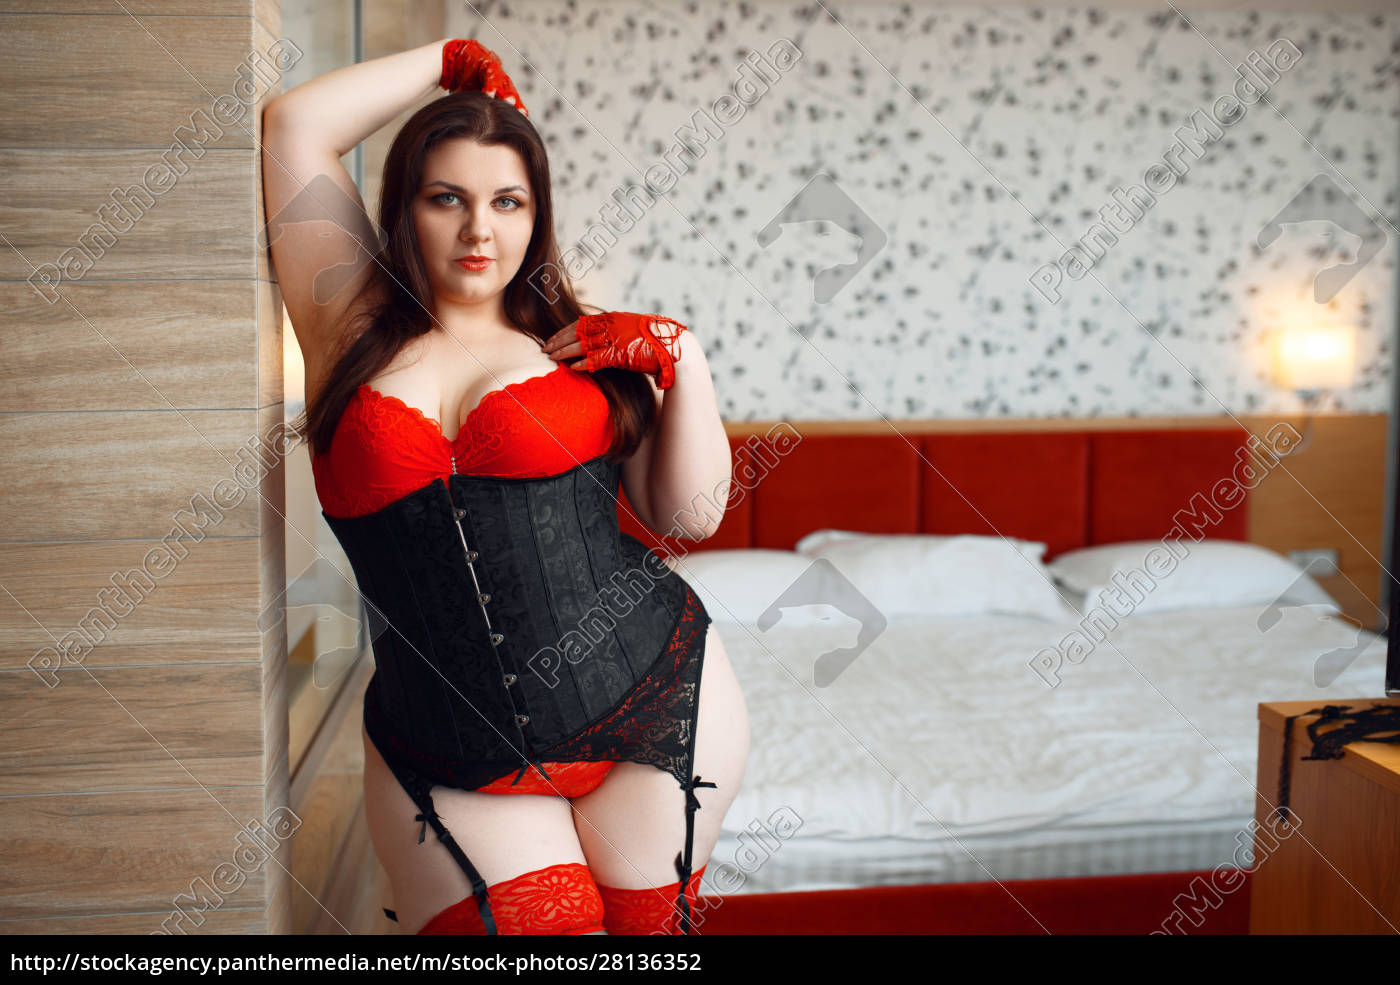 overweight, perverse, woman, poses, in, bedroom - 28136352